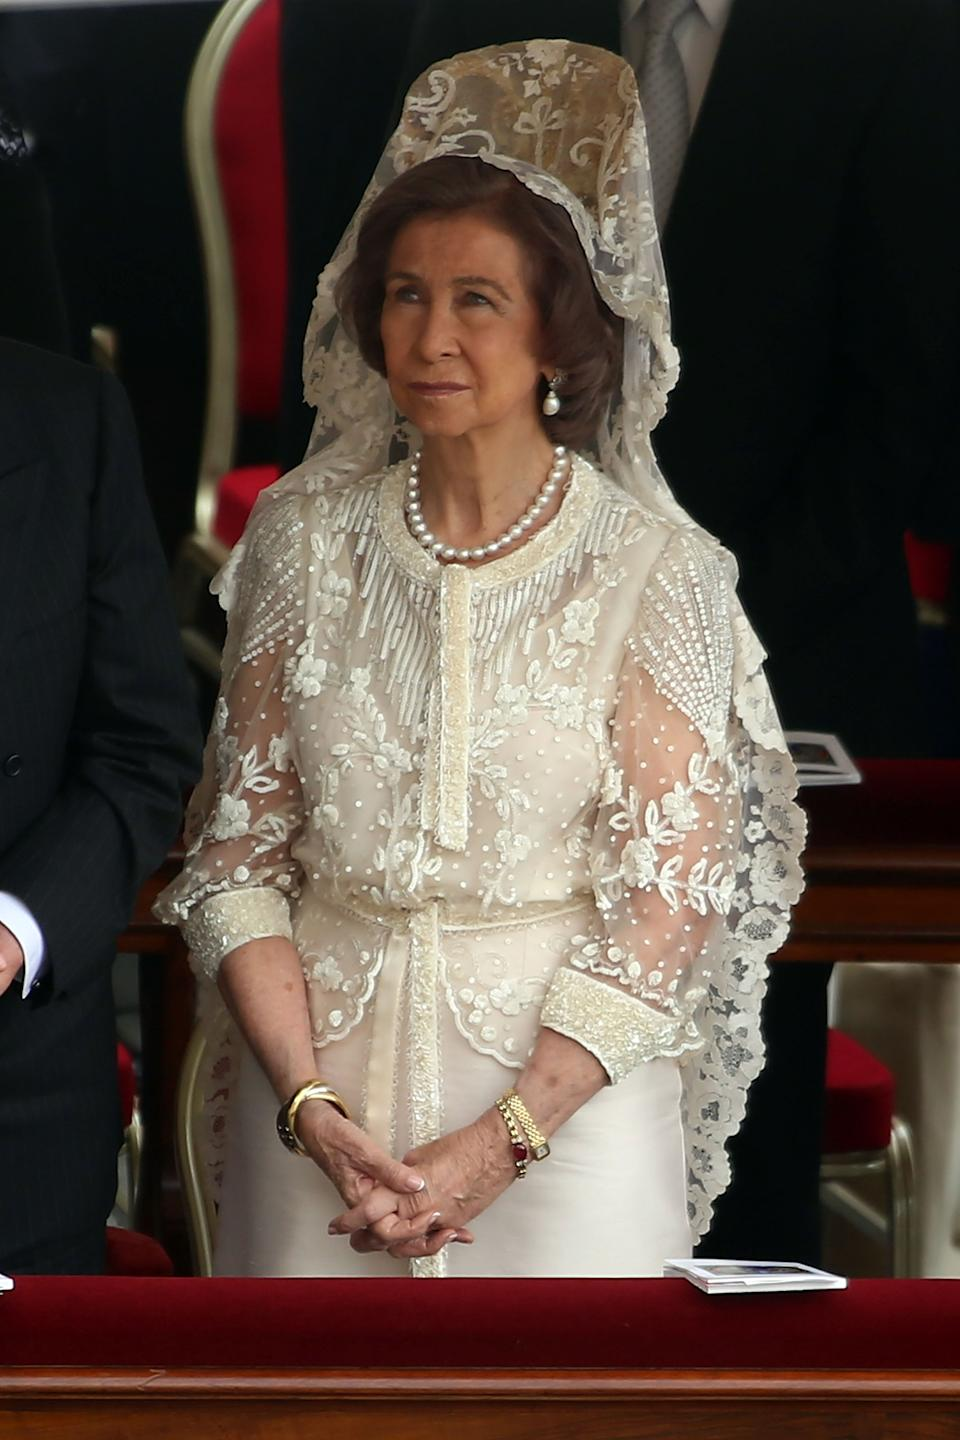 Queen Sofia of Spain wears white in Vatican City. (Photo by Franco Origlia/Getty Images)